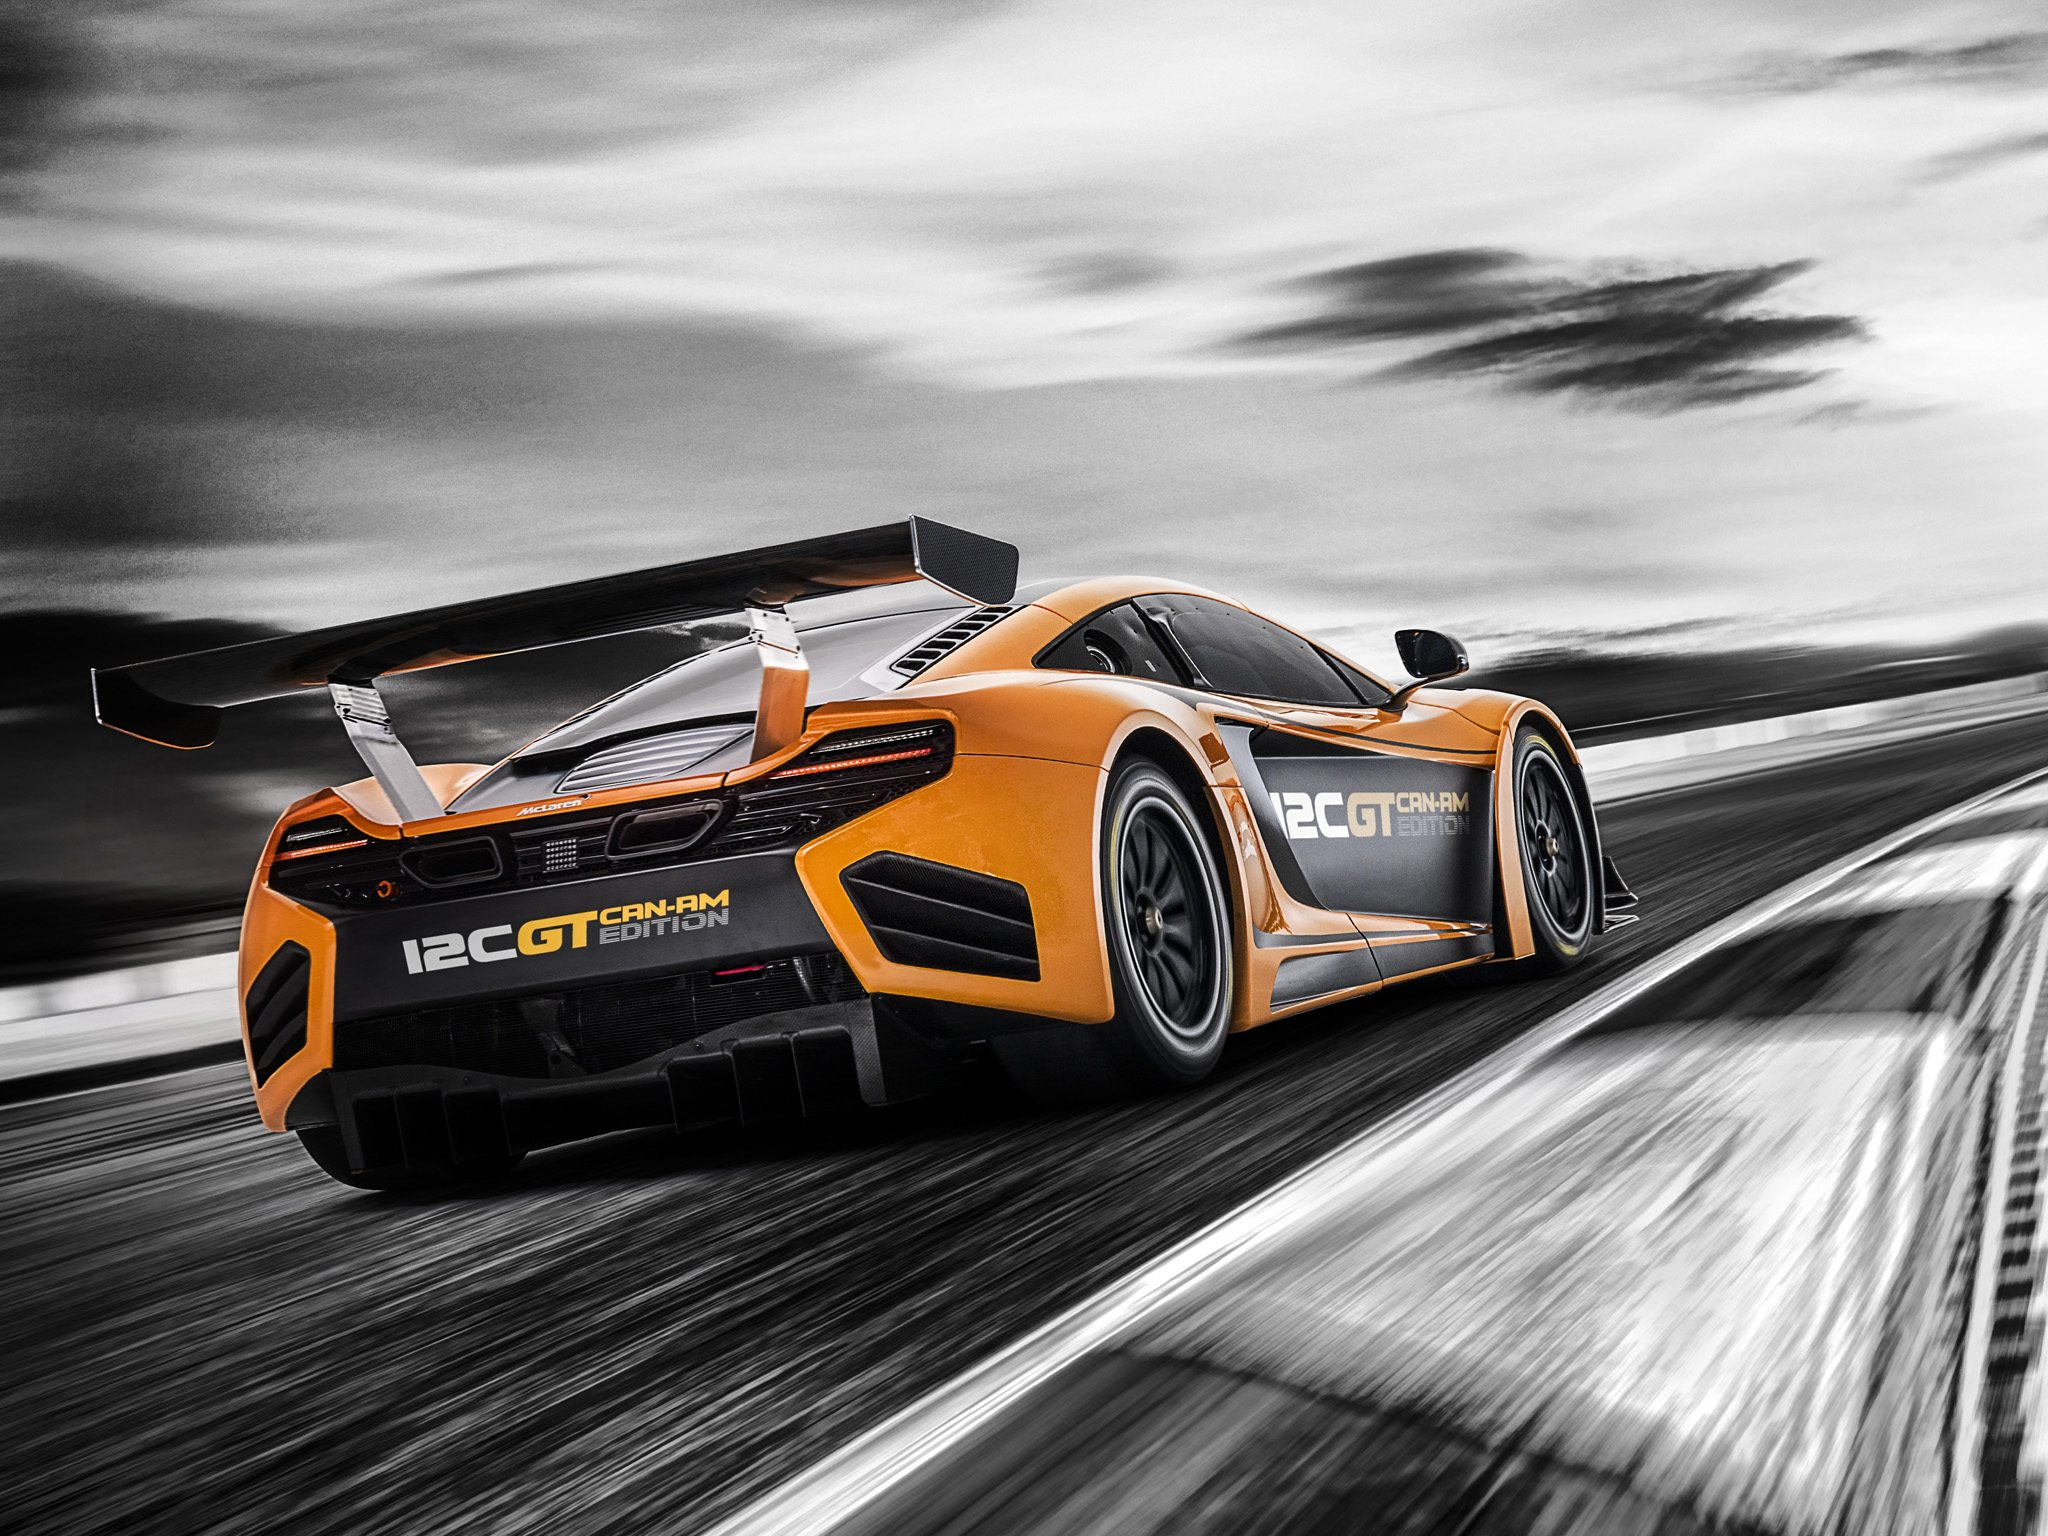 2014-12-pic41227187-2012-mclaren-12c-can-am-edition-concept